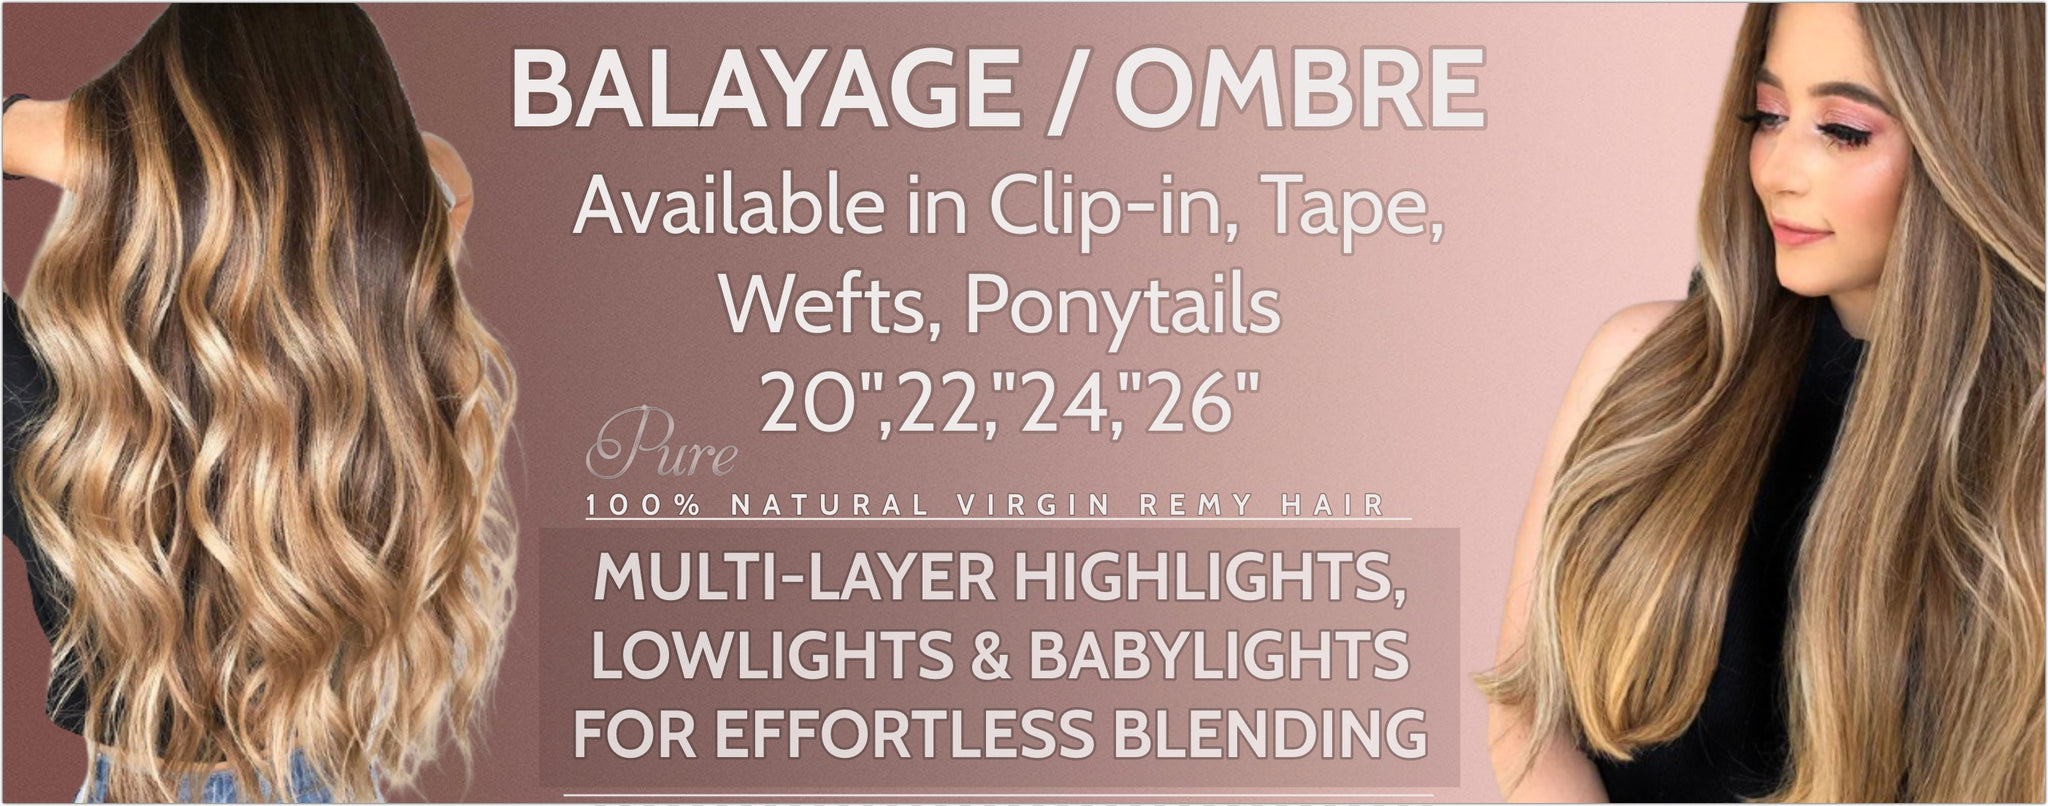 Balayage tape hair extensions, Ombre tape Hair extensions Australia